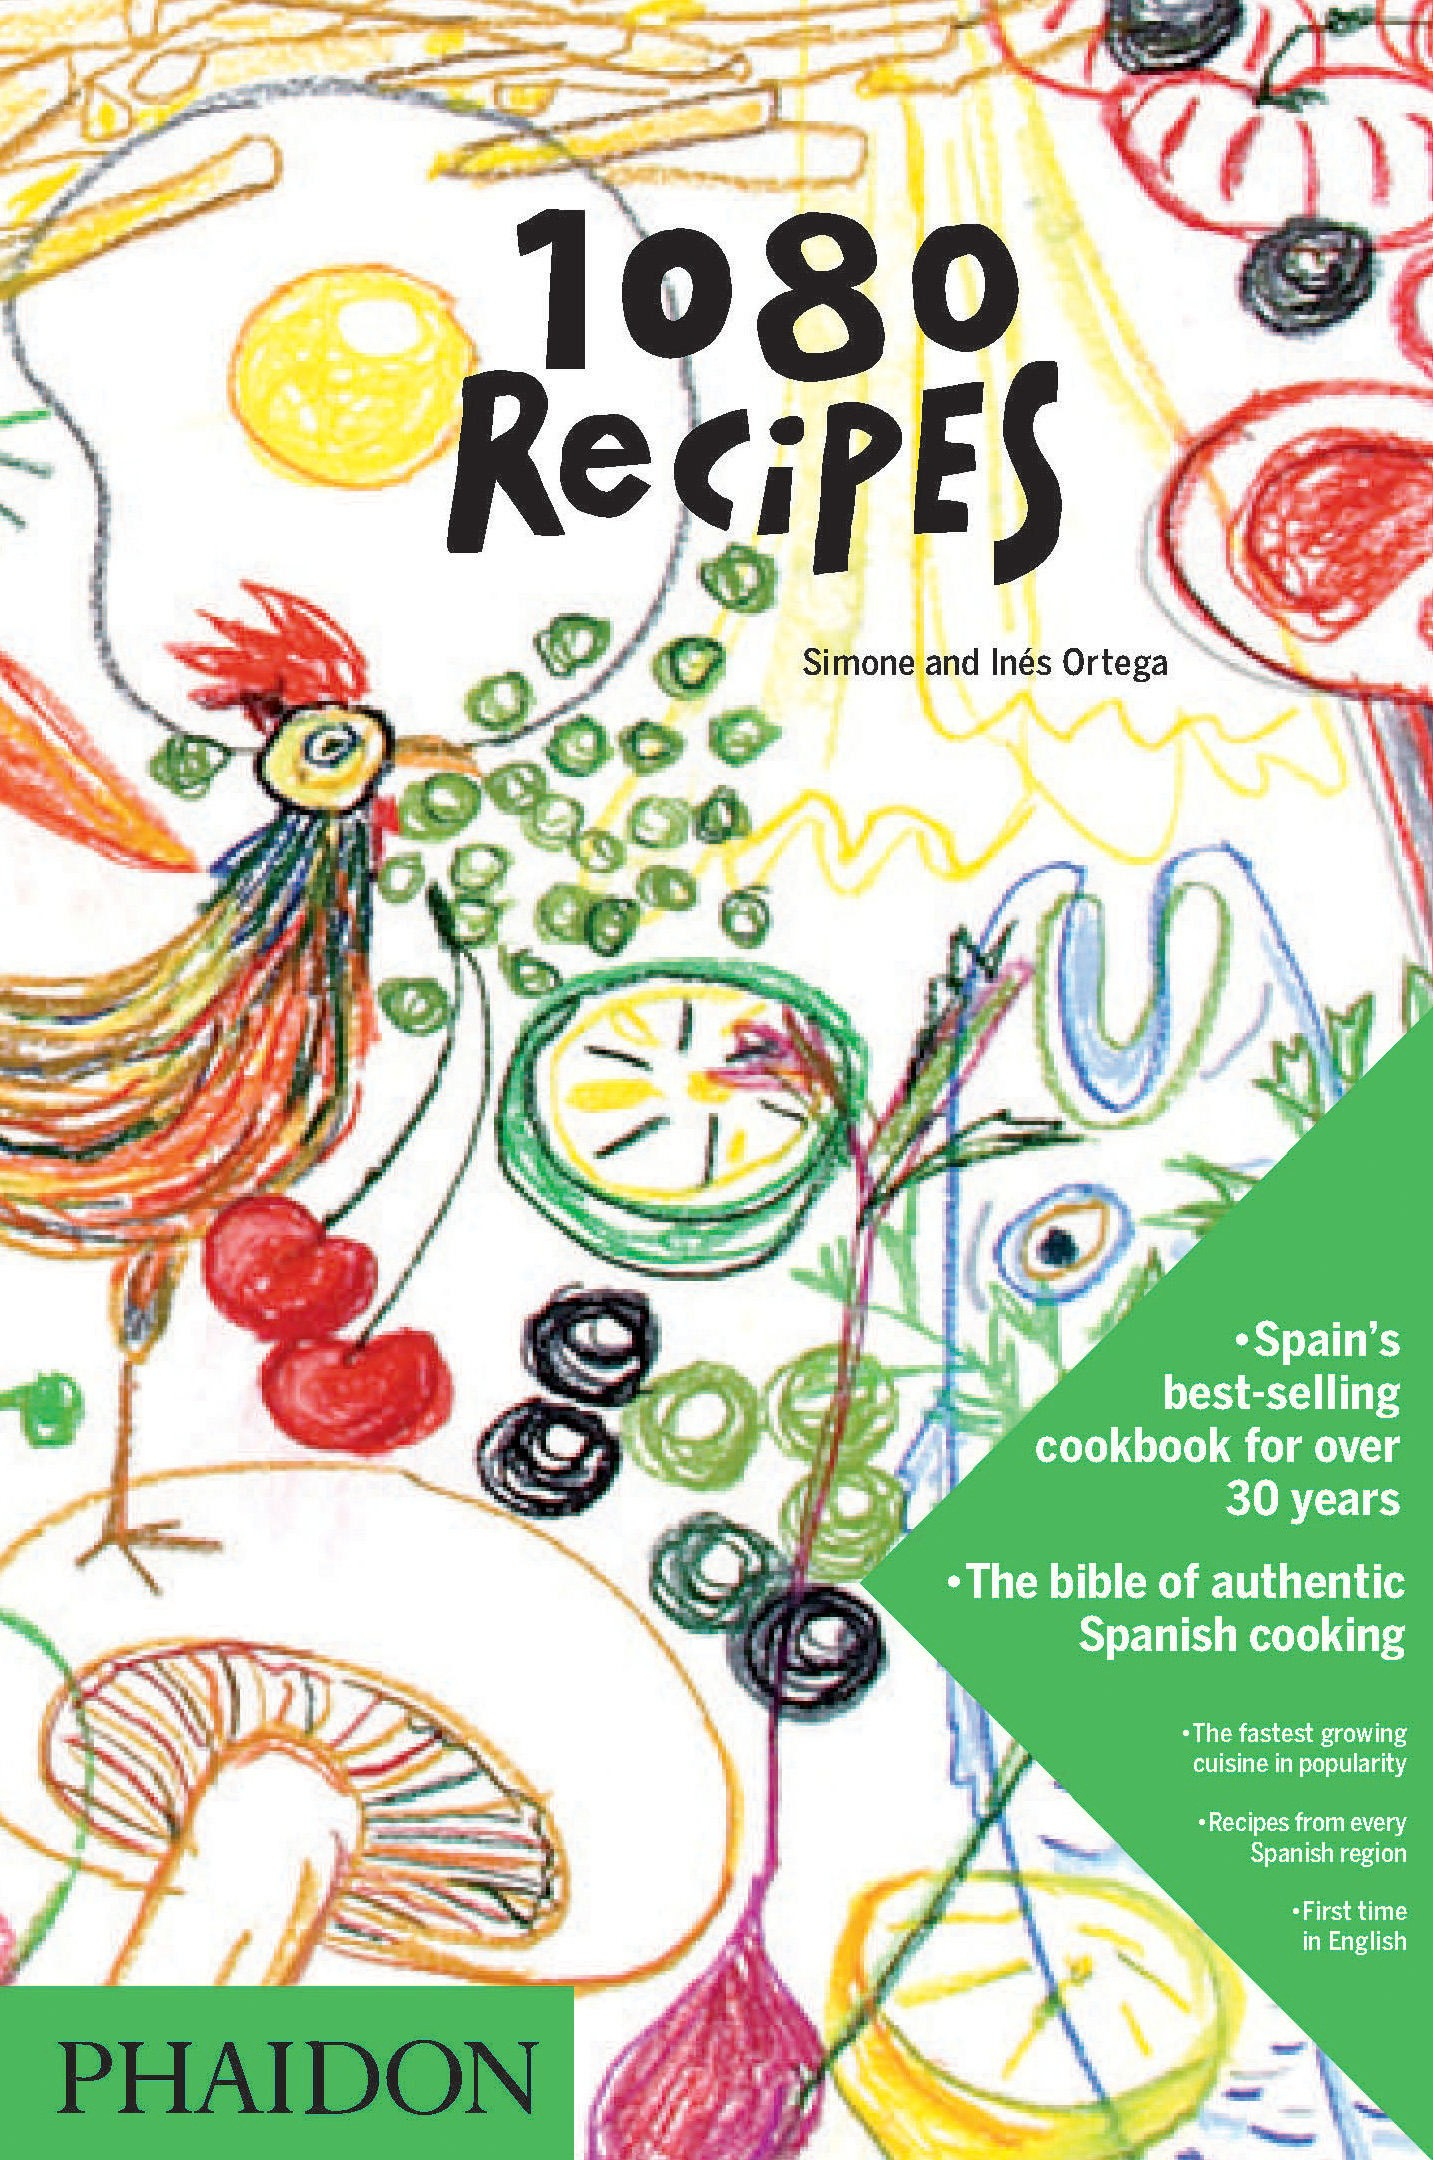 1080 Recipes by Simone and Ines Ortega 1